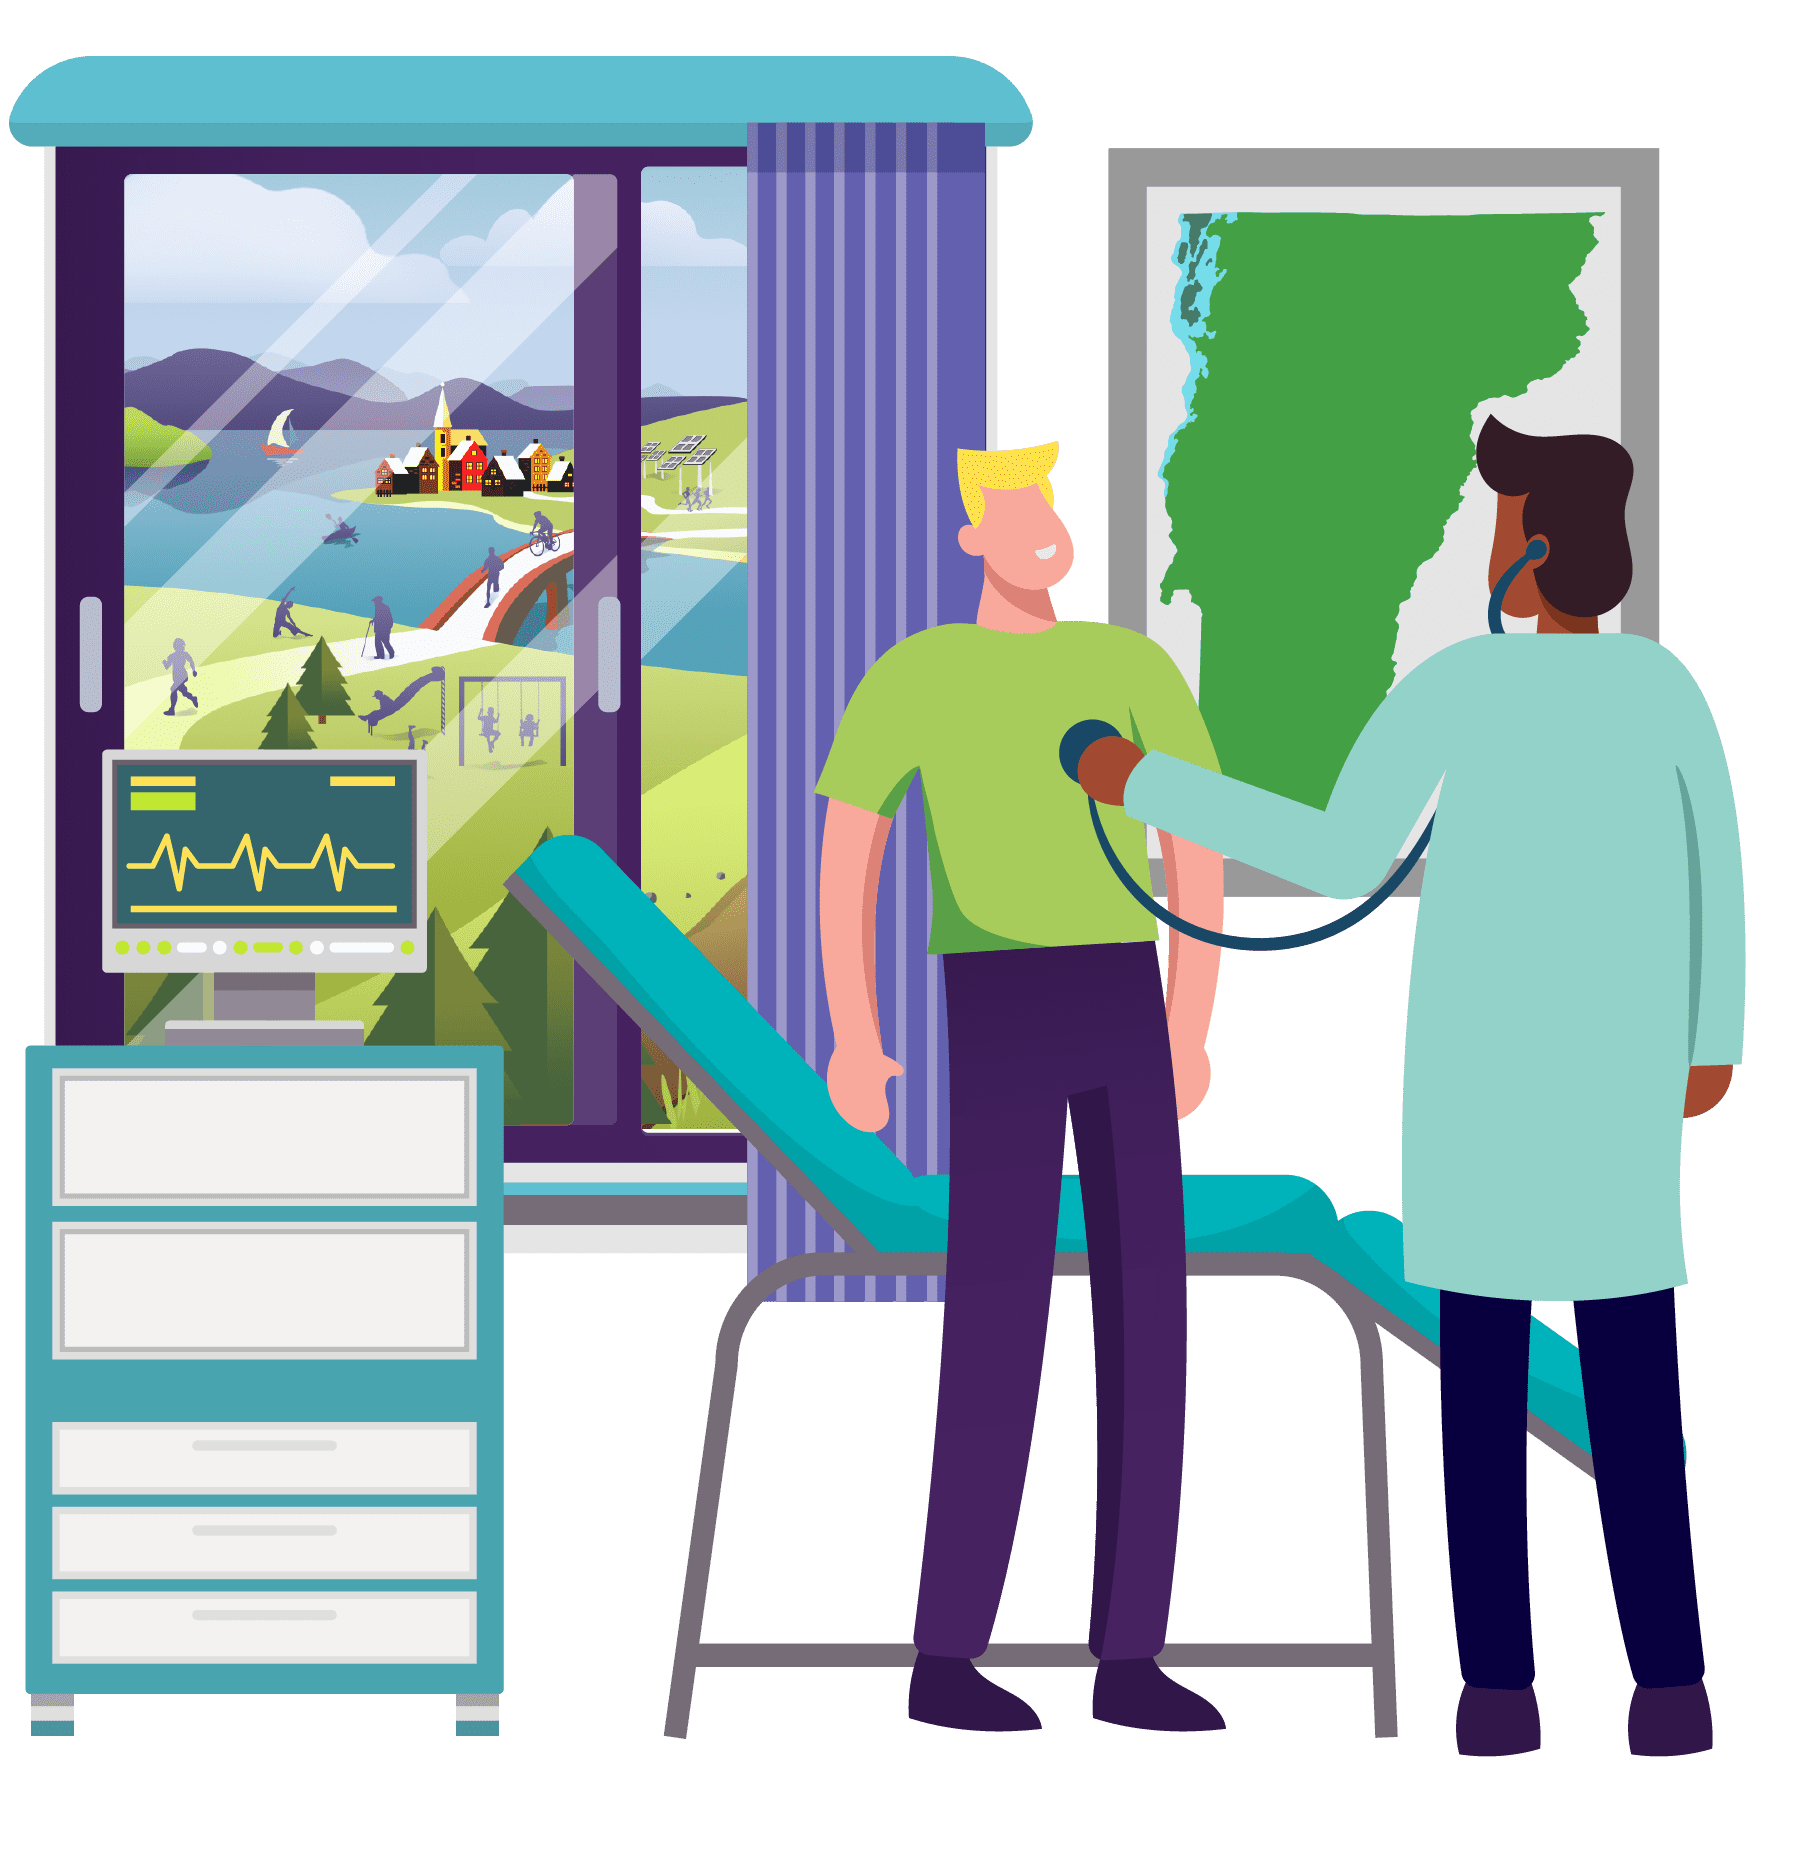 Larger Version Illustration - OneCare Core Business Area - the Statewide Care Model - showing a doctor taking care of a male patient checking his heart beat with a stethoscope. Next to the patient is a window showing Vermonters in healthy communities engaging in activities promoting healthier lifestyles.